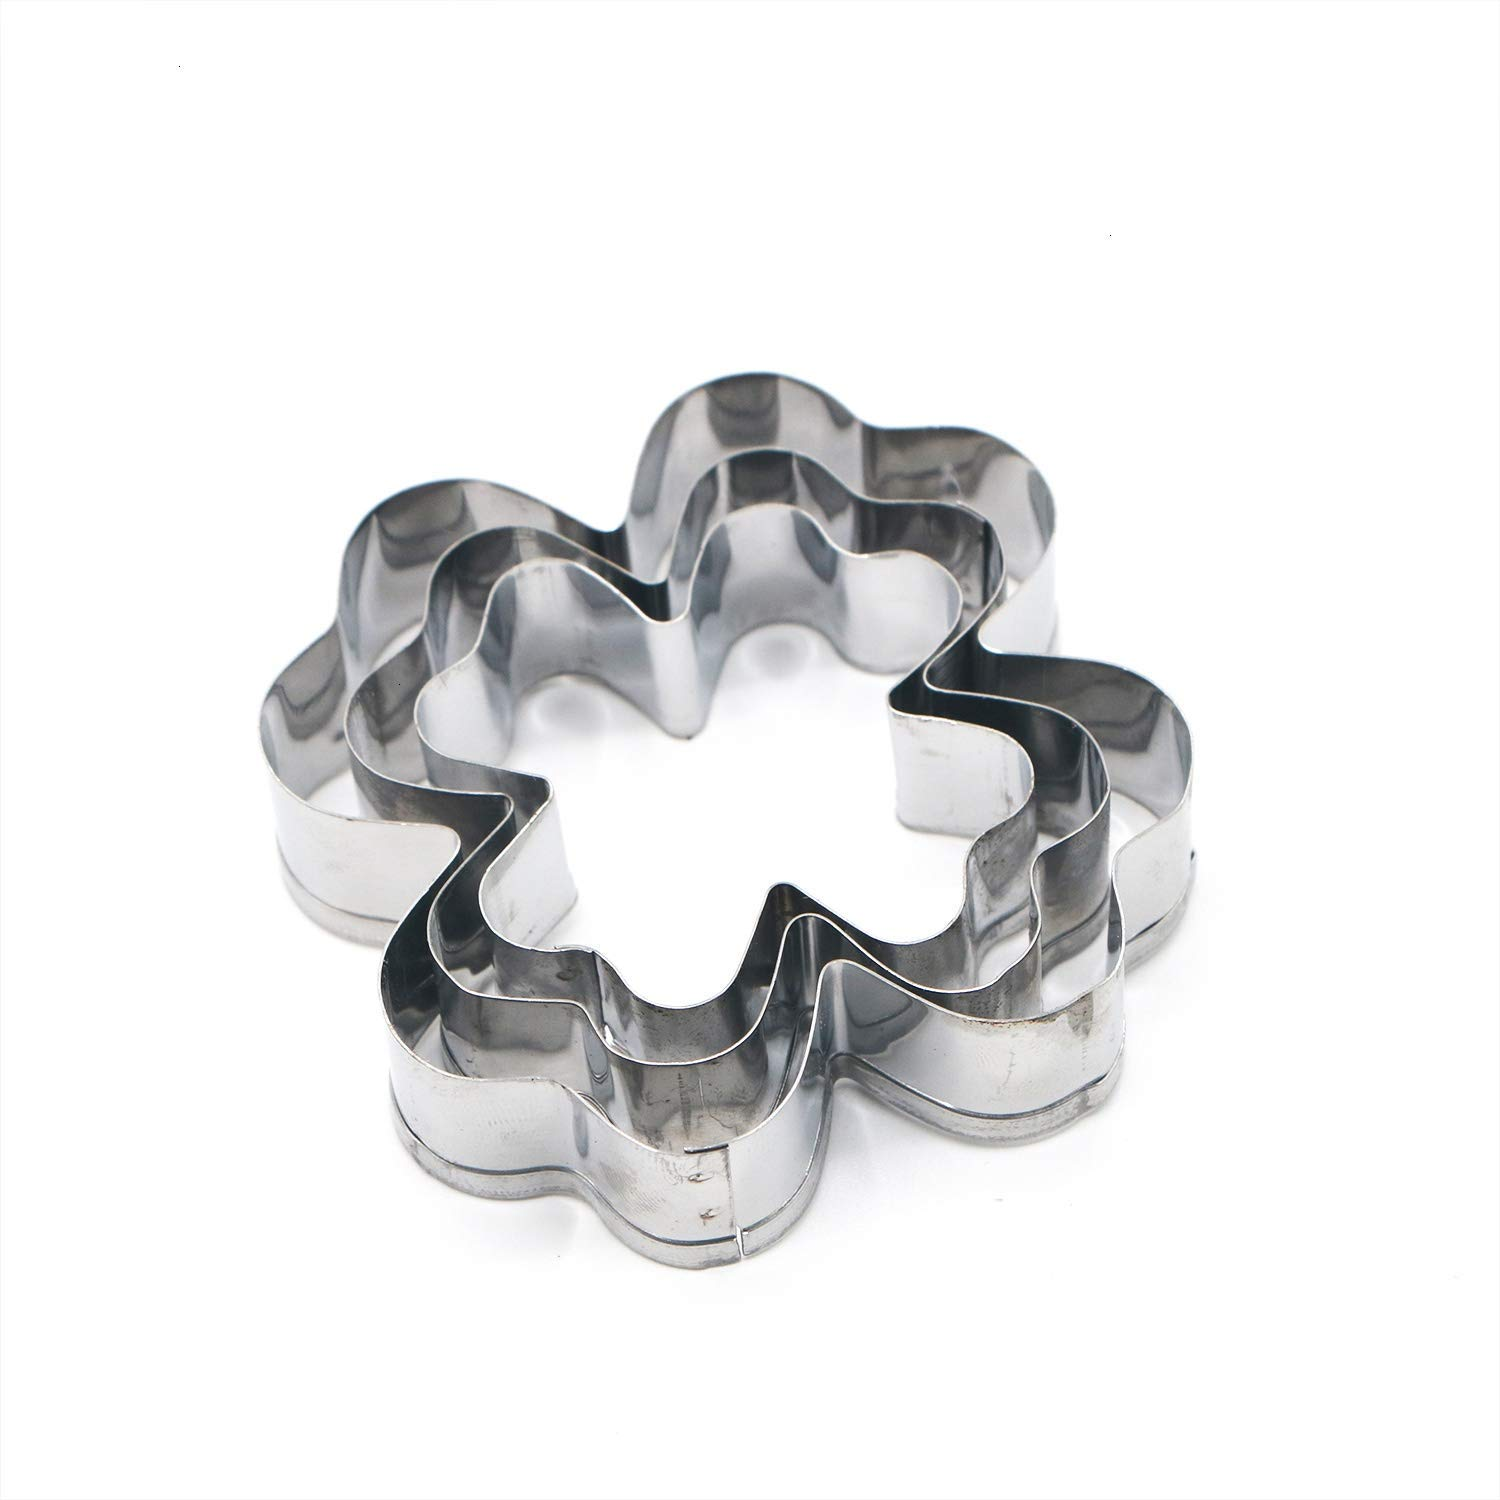 HUELE 2 Set Stainless Steel Clover Cookie Cutter, Each Set Containing 3 Different Size Cookie Cutter